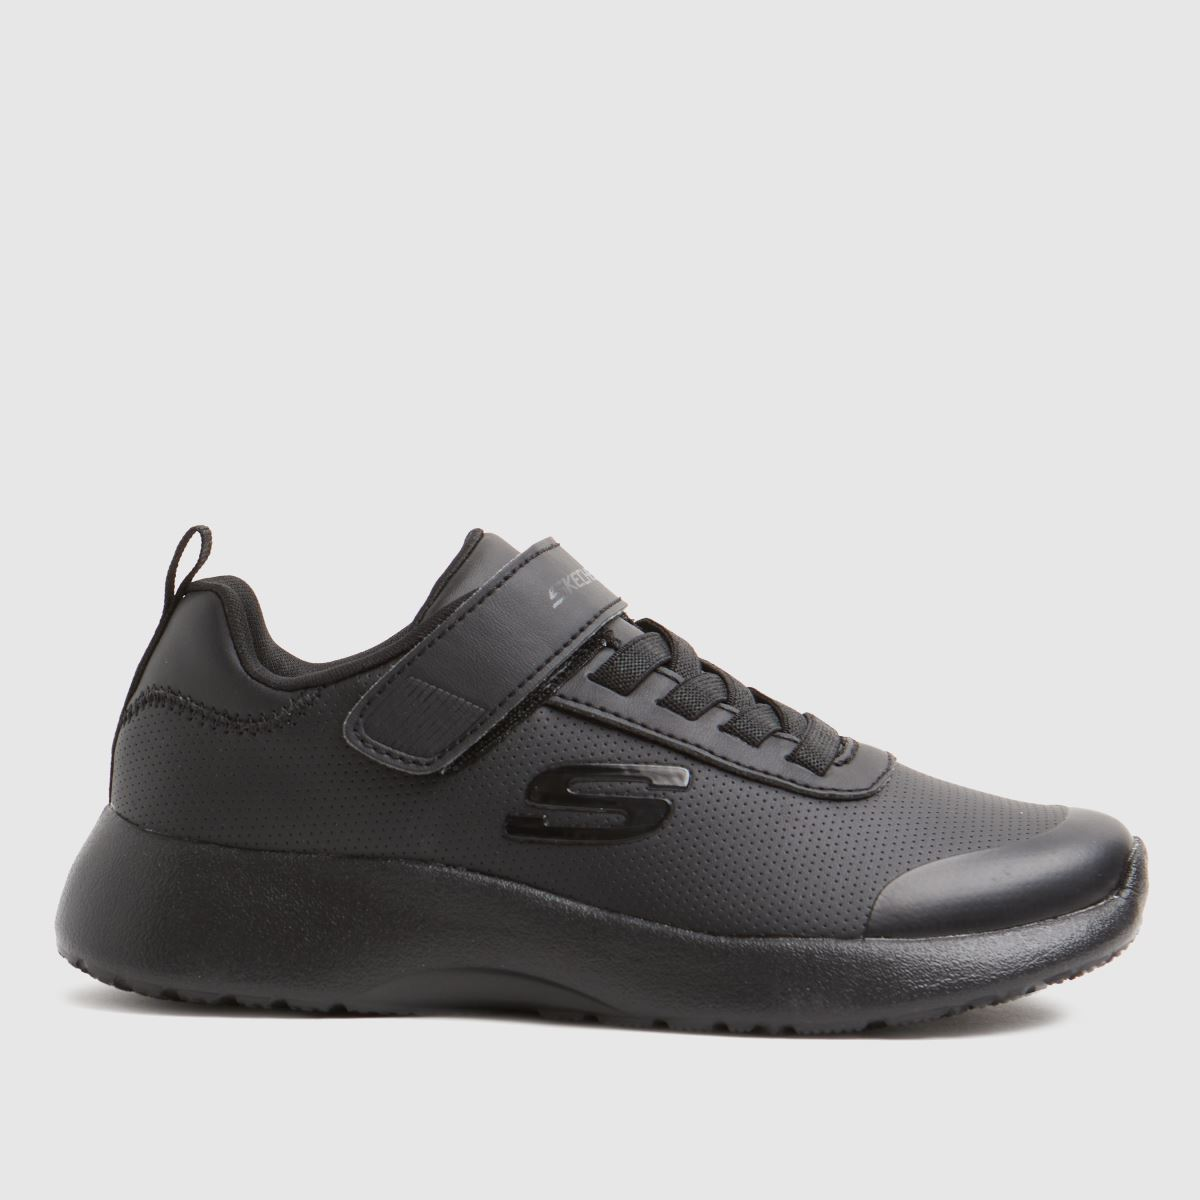 SKECHERS Black Dynamight D.s Trainers Youth